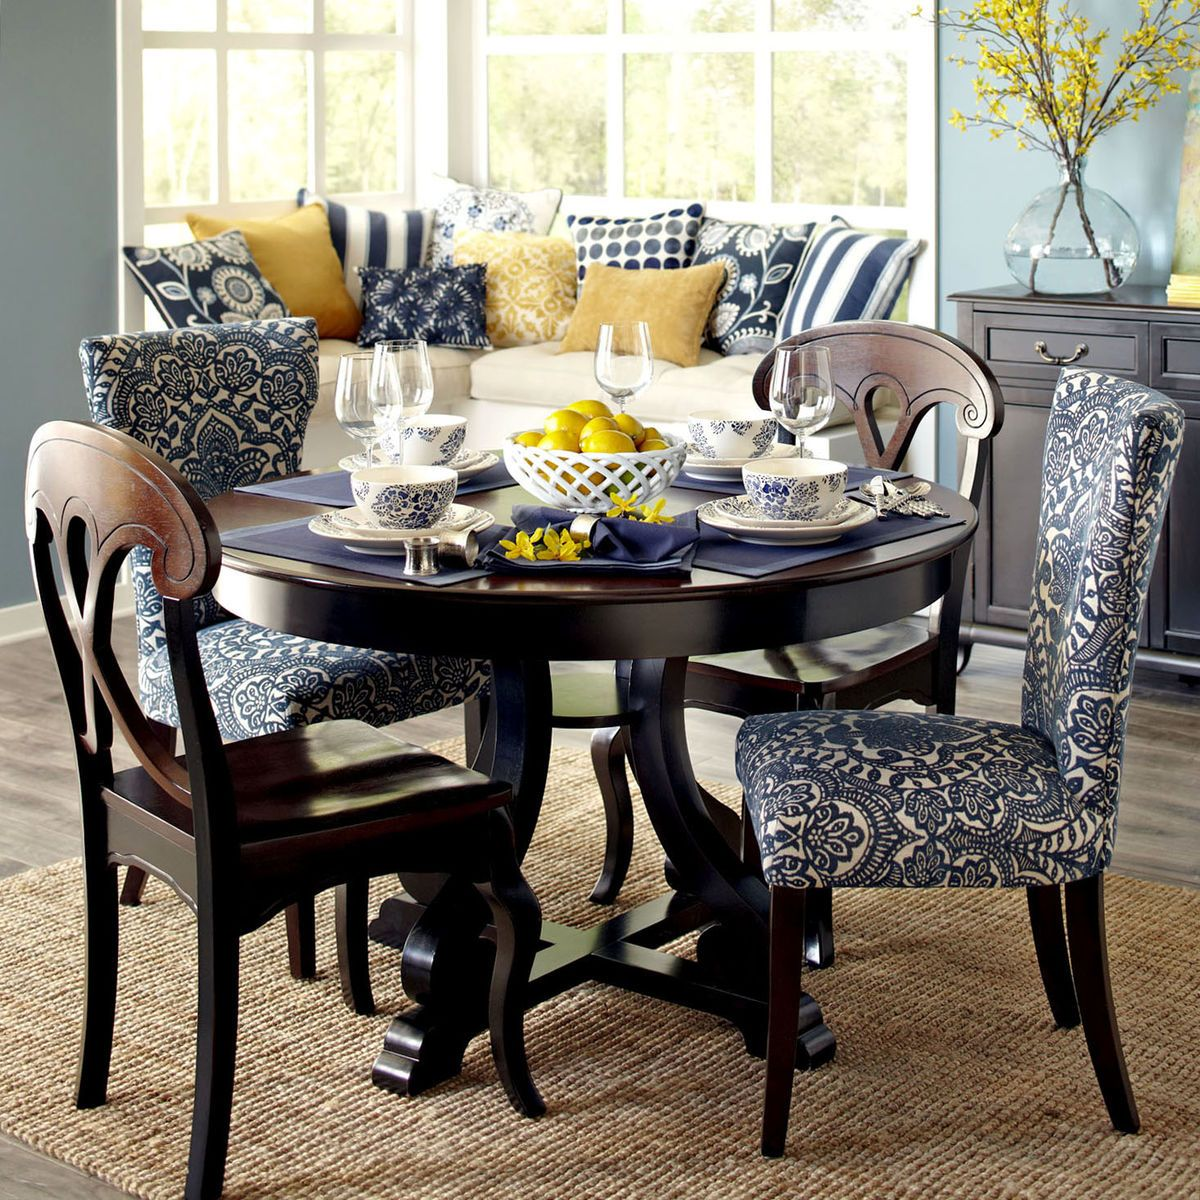 Carmilla Dining Chair Blue Damask Dining Table Black Dining Chairs Dining Room Chairs Diy